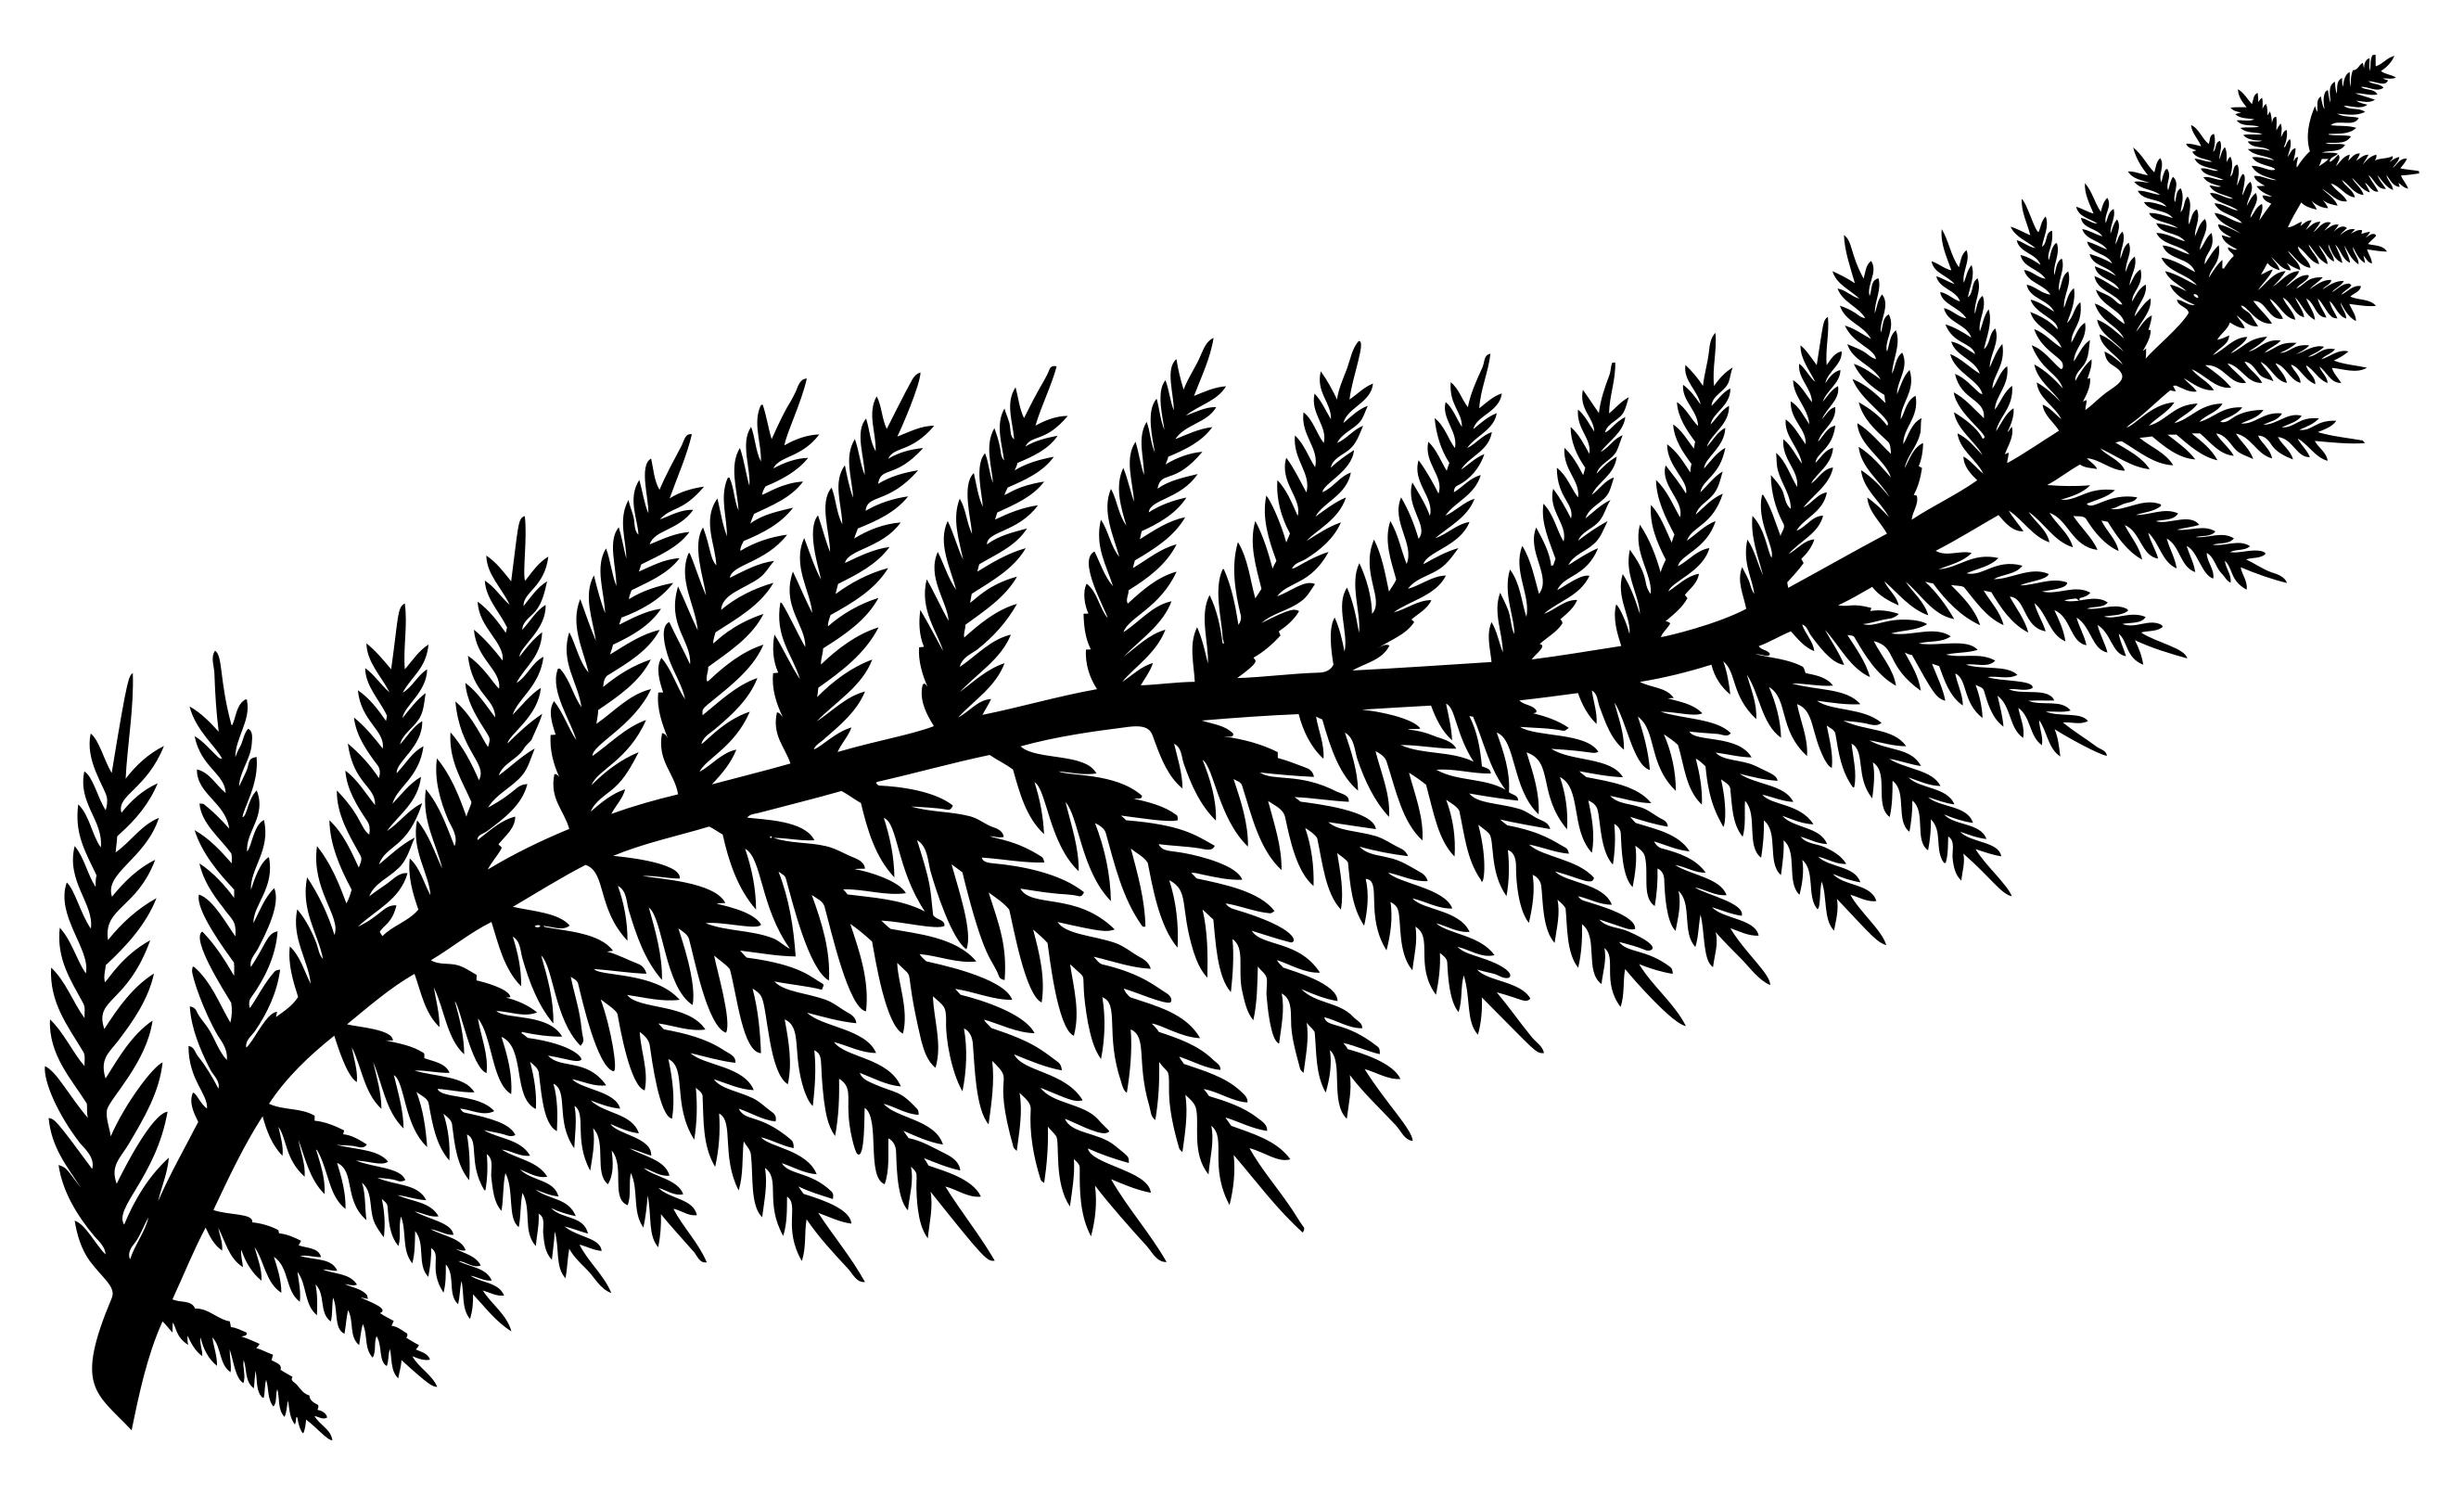 Fern Leaf Silhouette at GetDrawings.com | Free for personal use Fern ...